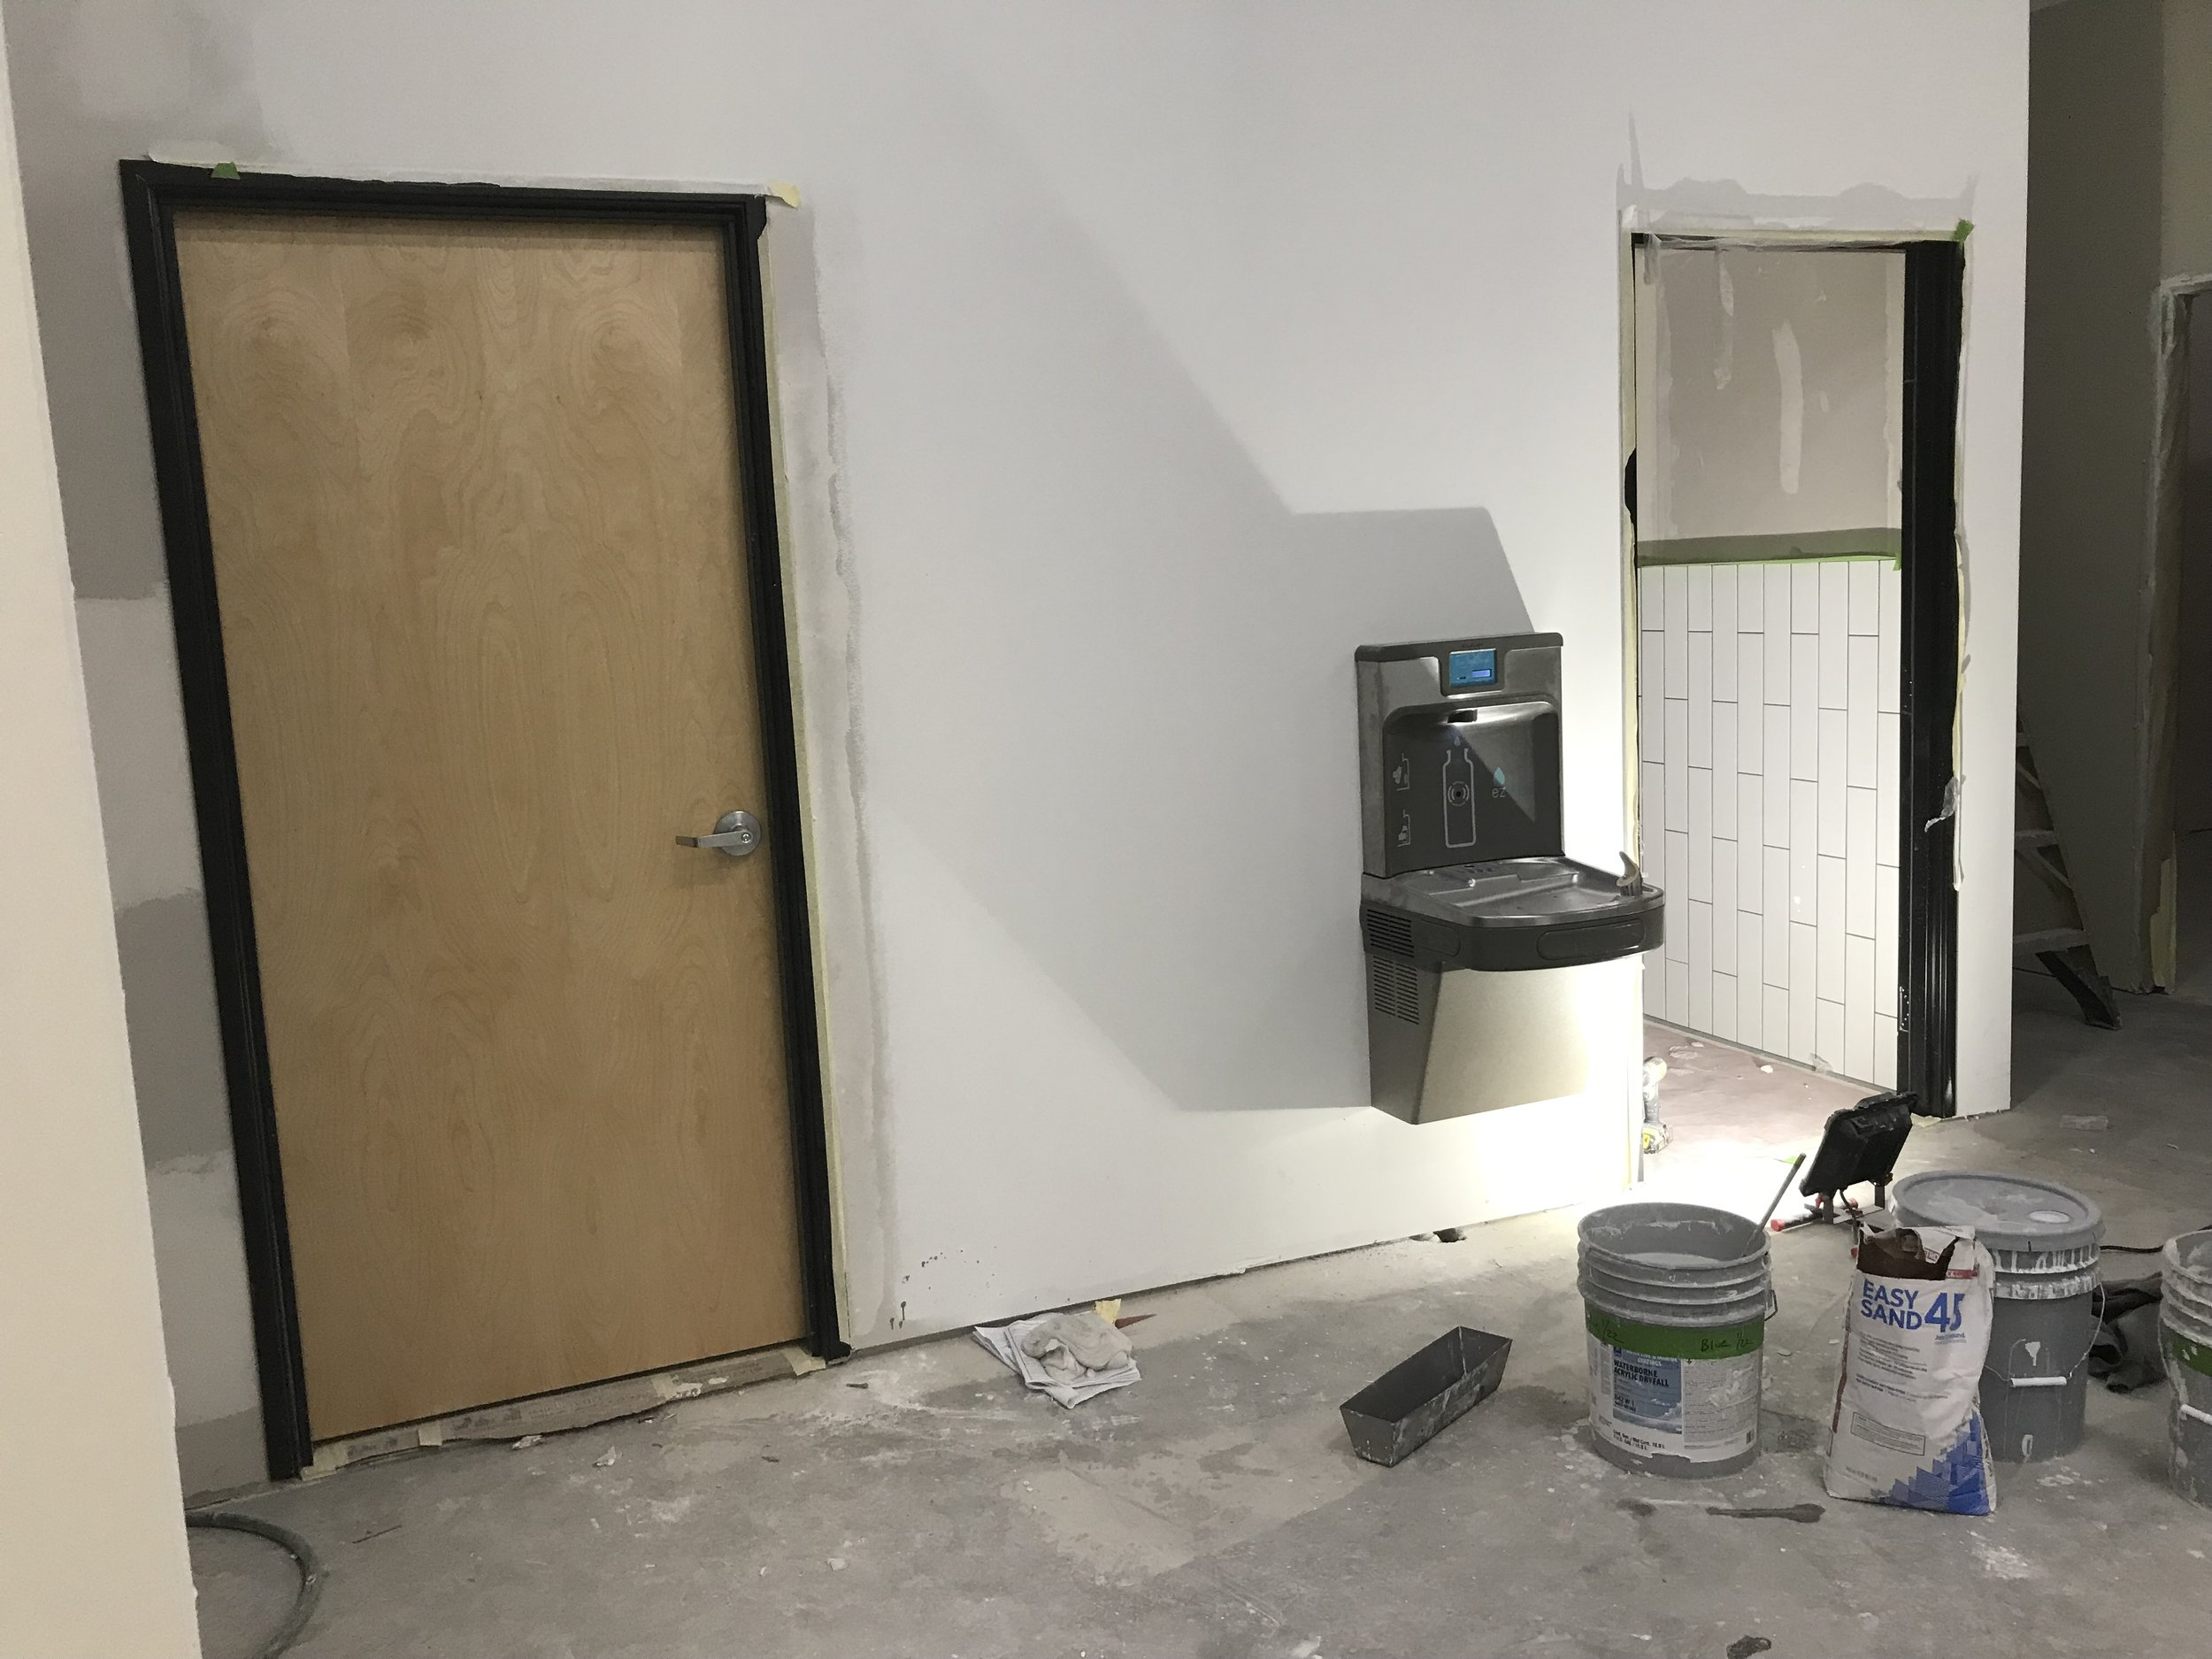 Our gender neutral restrooms and new water fountain